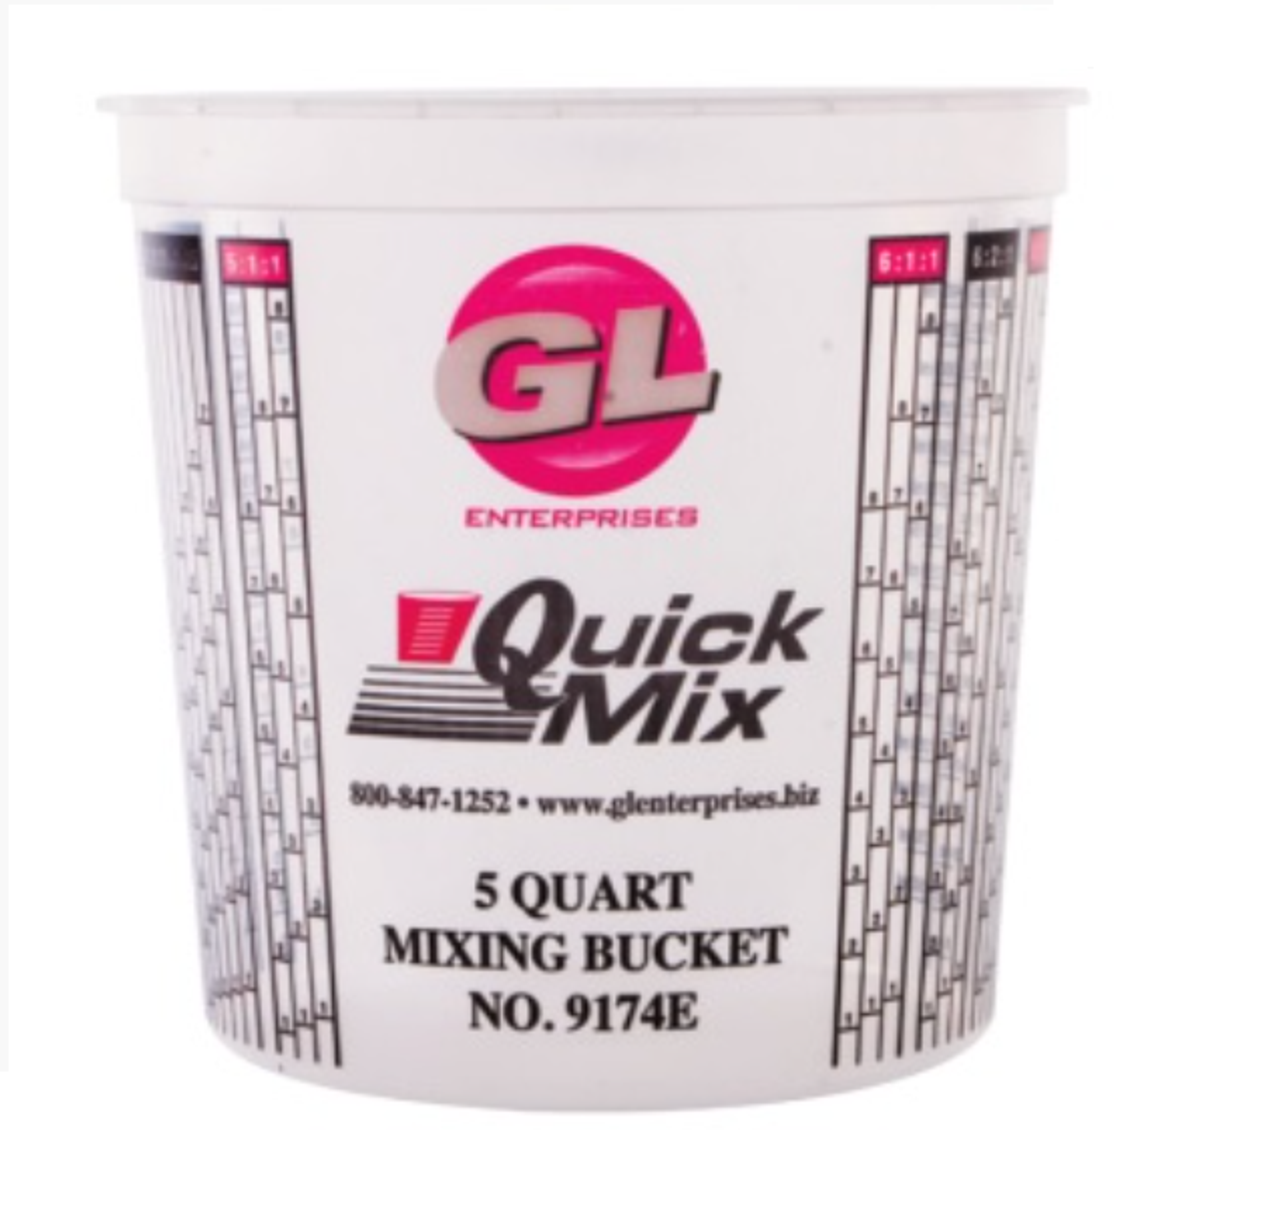 Quick Mix Measuring/Mixing Cups 5 Quarts #9174 Large 174 oz Graduated (25 Per Box)